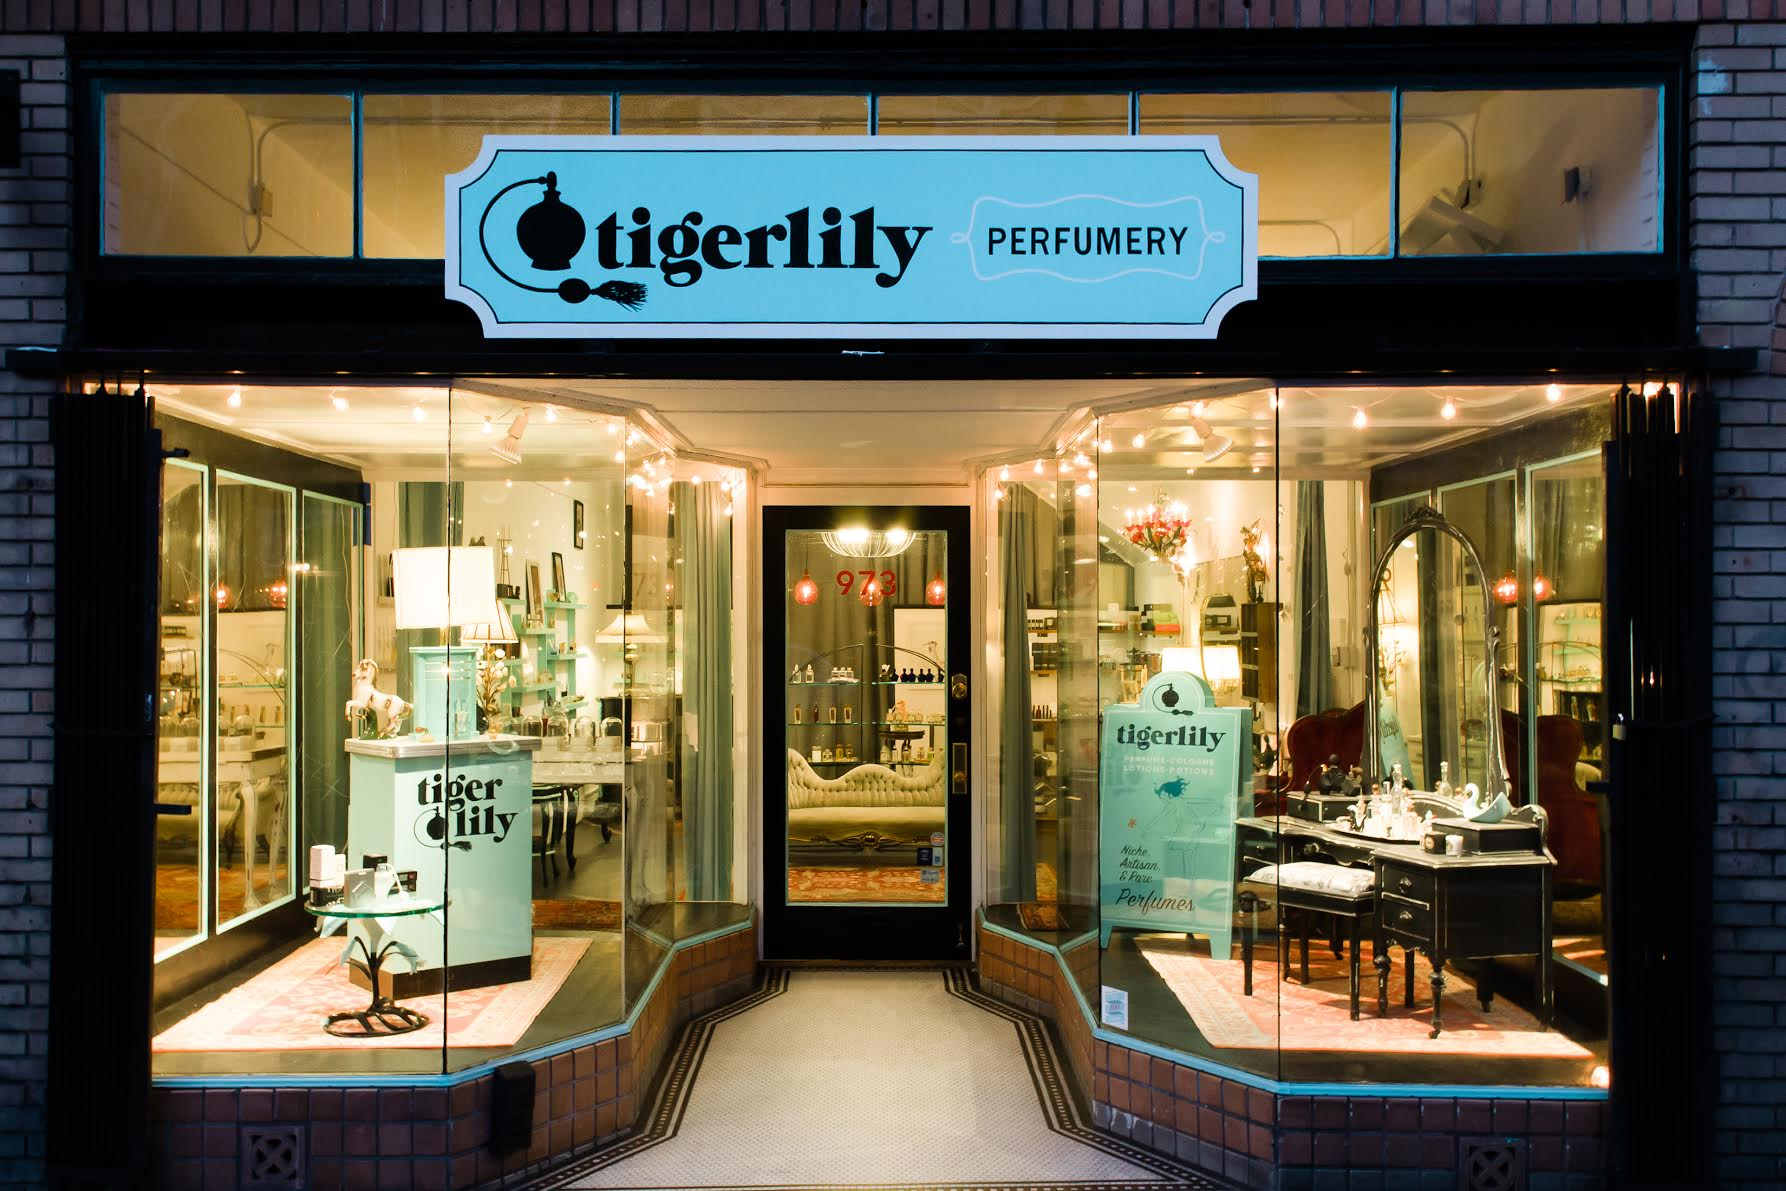 Exterior Store of Tigerlily; Image Courtesy of Tigerilly Perfumery